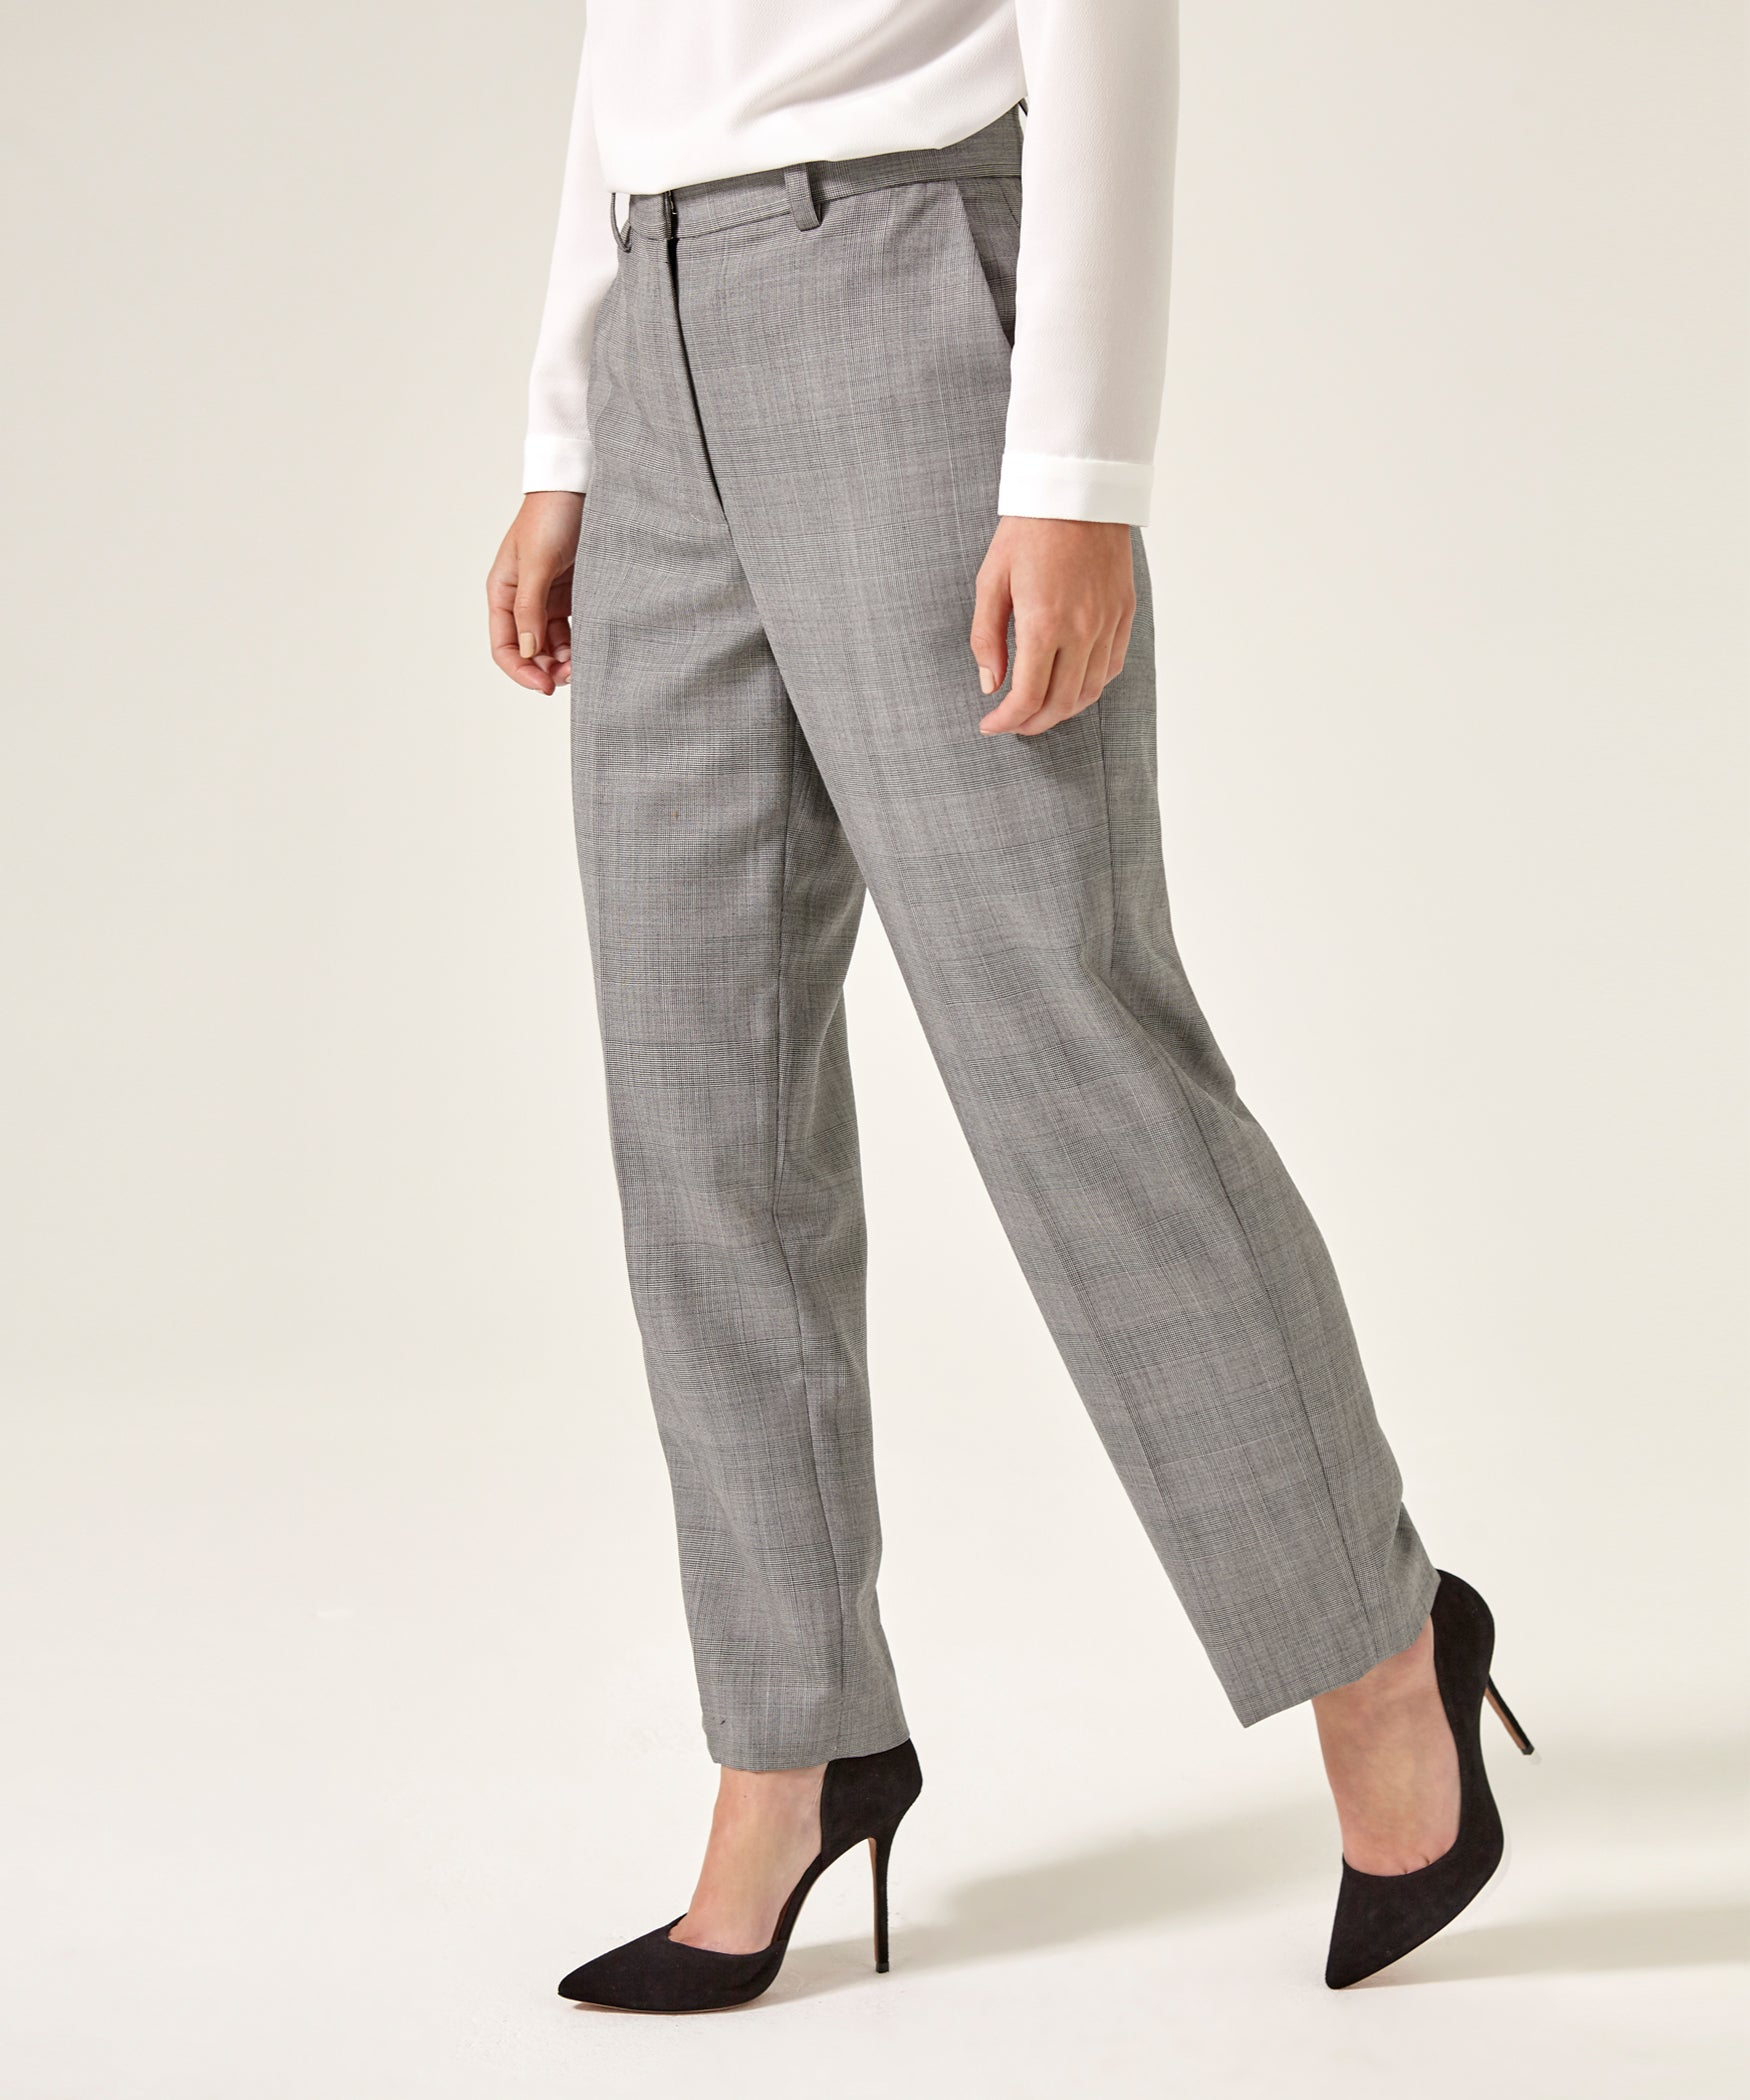 Petite Grey Merino Wool Trousers - Jennifer-Anne